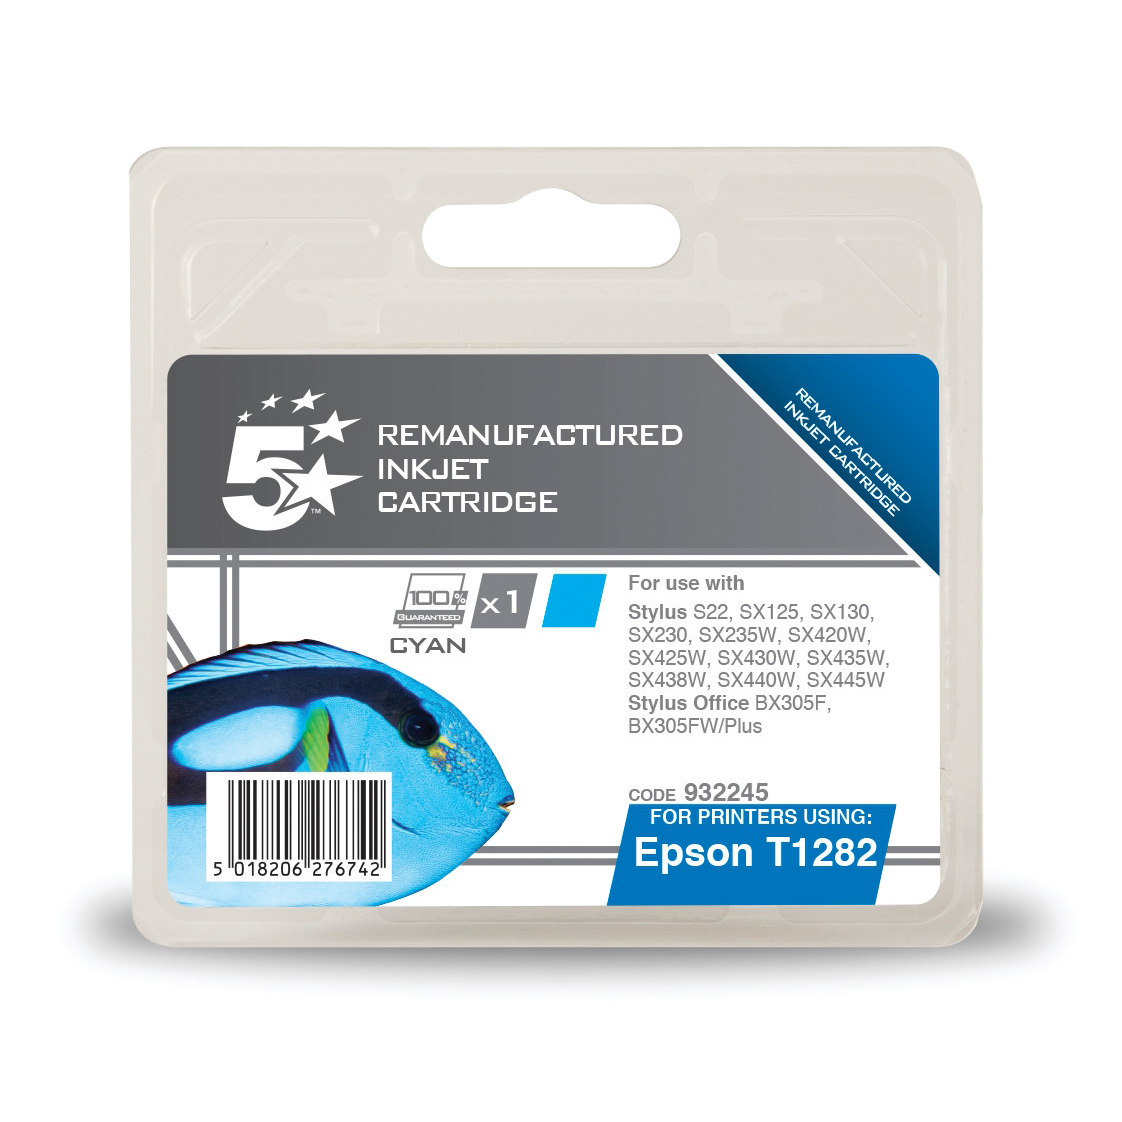 5 Star Office Remanufactured Inkjet Cartridge Page Life 250pp 3.5ml Cyan [Epson T1282 Alternative]